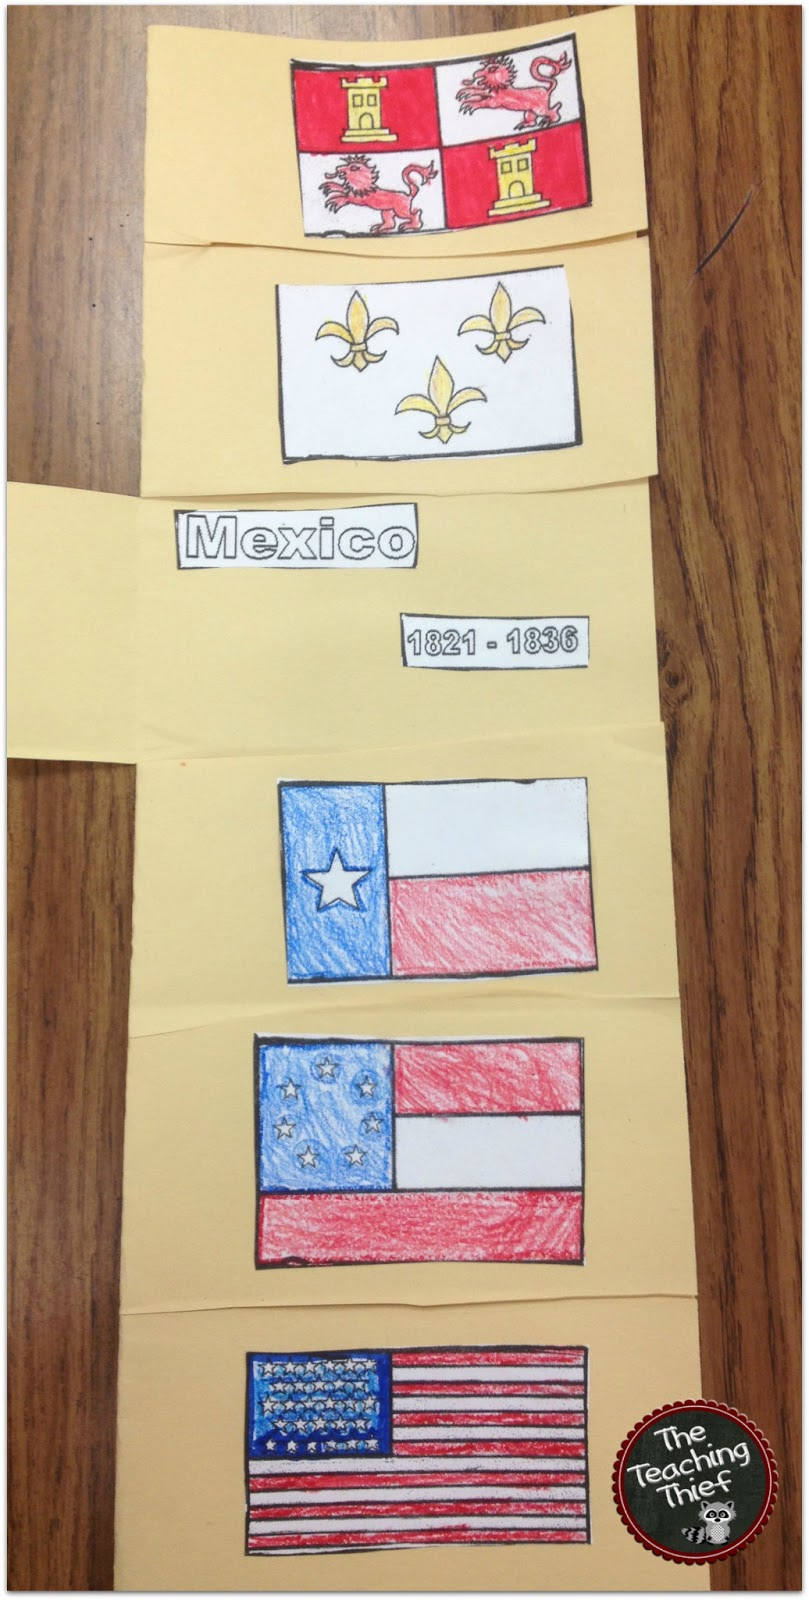 Texas History Classroom Decorations ~ The teaching thief six flags over texas a flip book